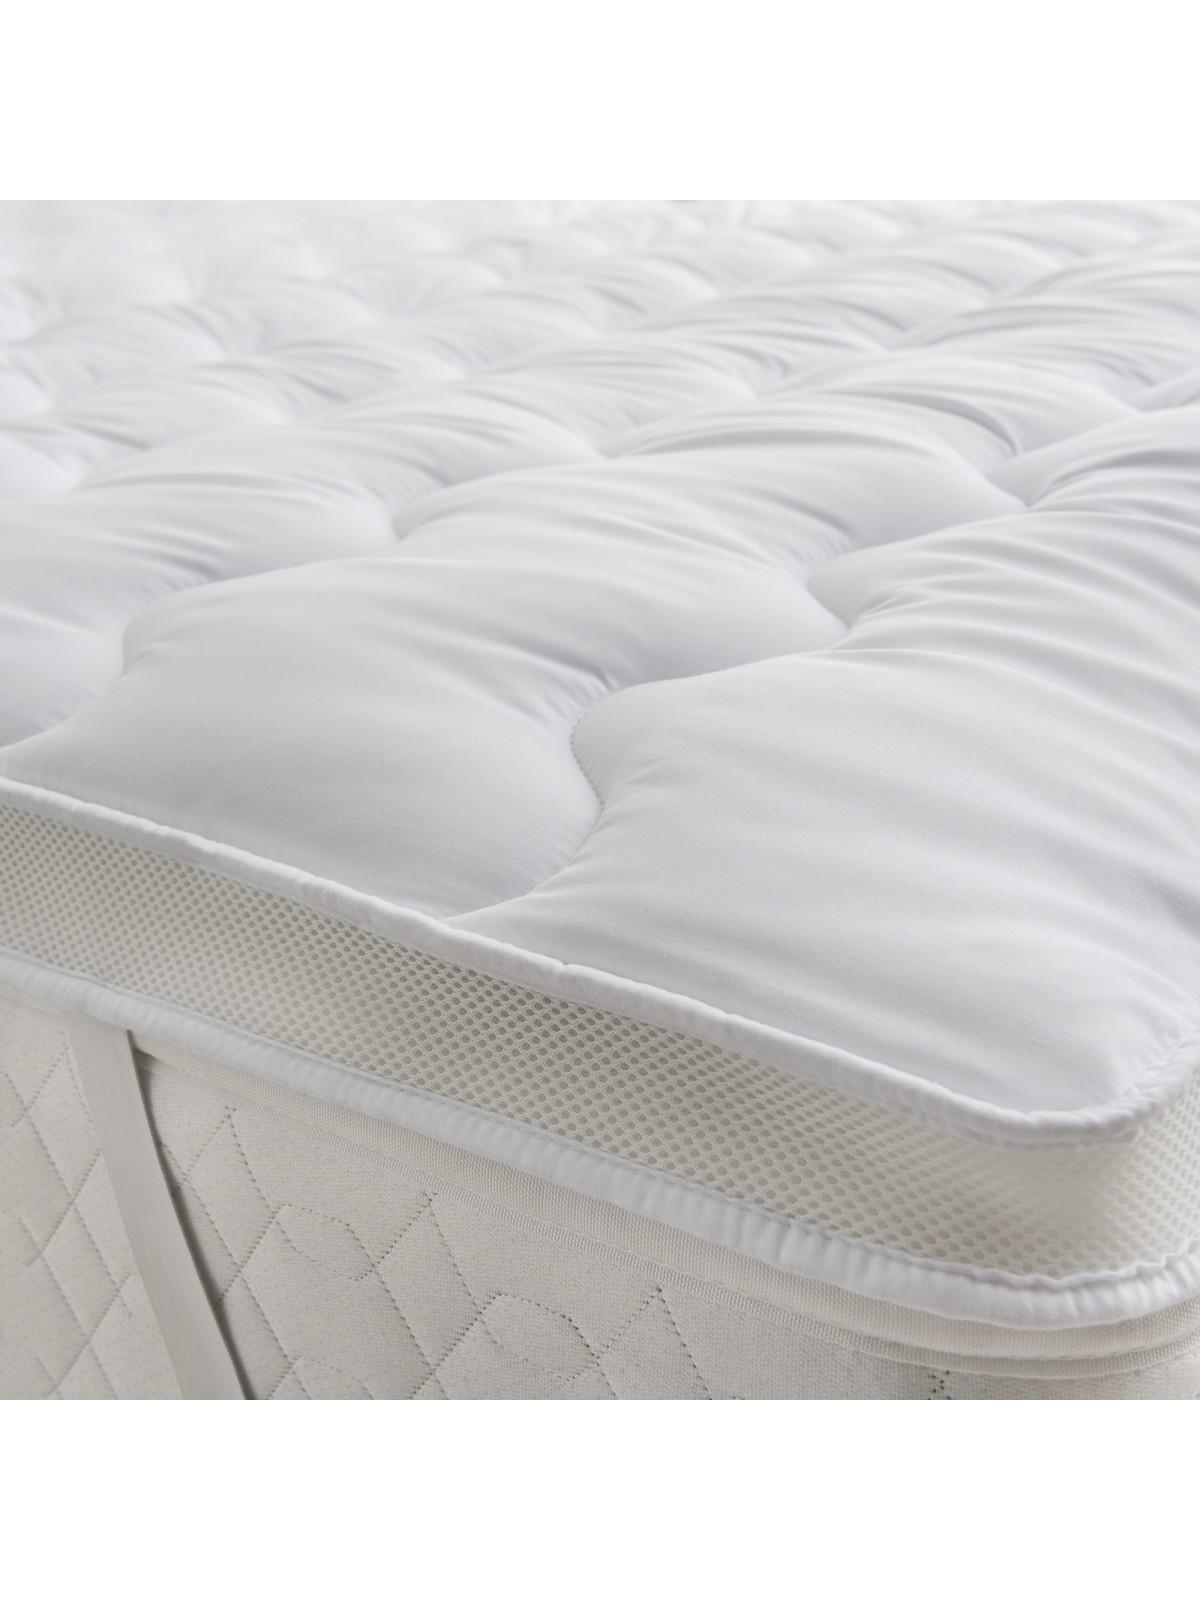 silentnight air max mattress topper single